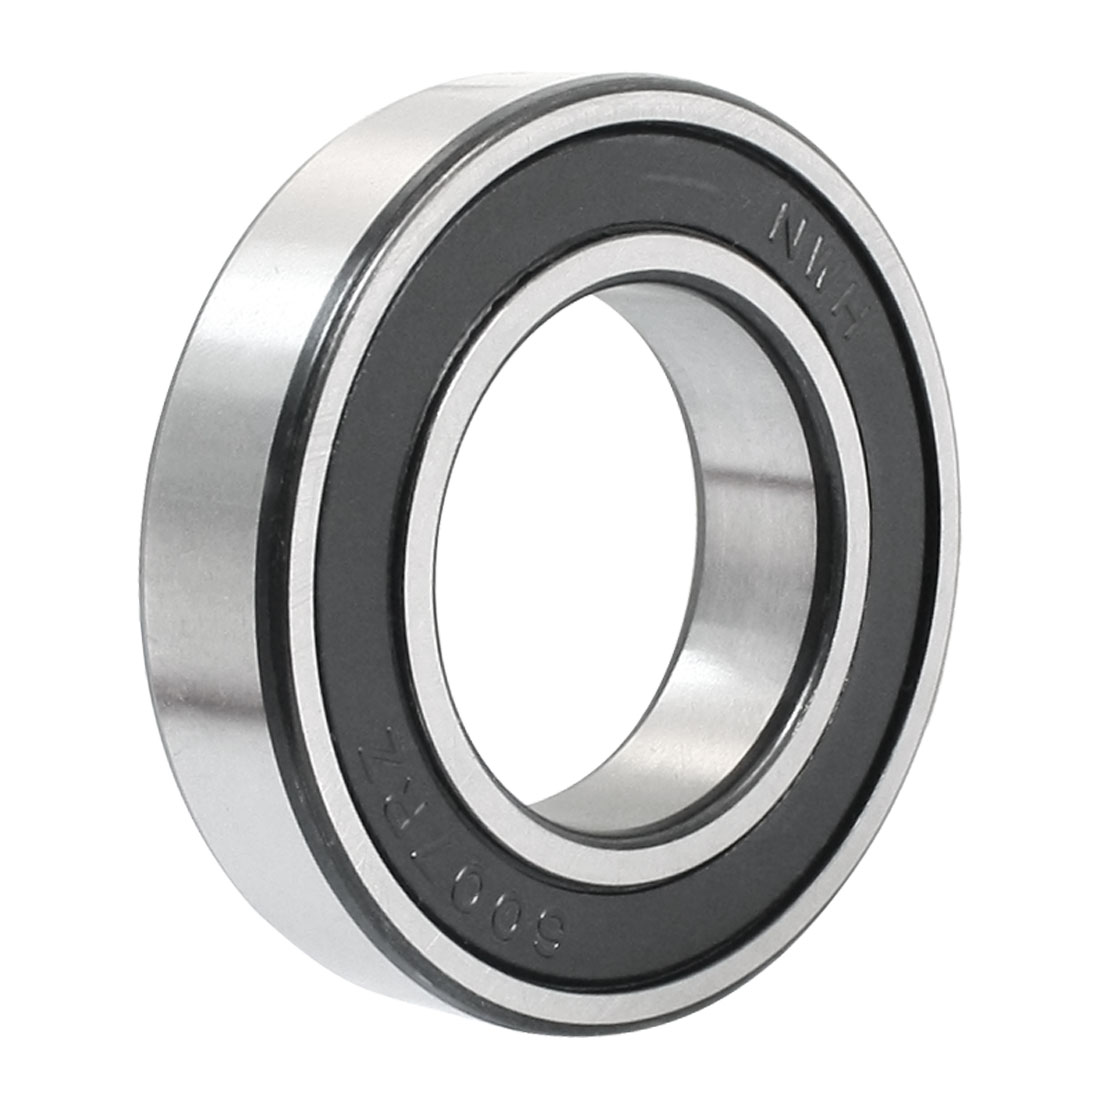 35mm x 62mm x 14mm Chrome Steel Sealed Deep Groove Ball Bearing 6007-2RS